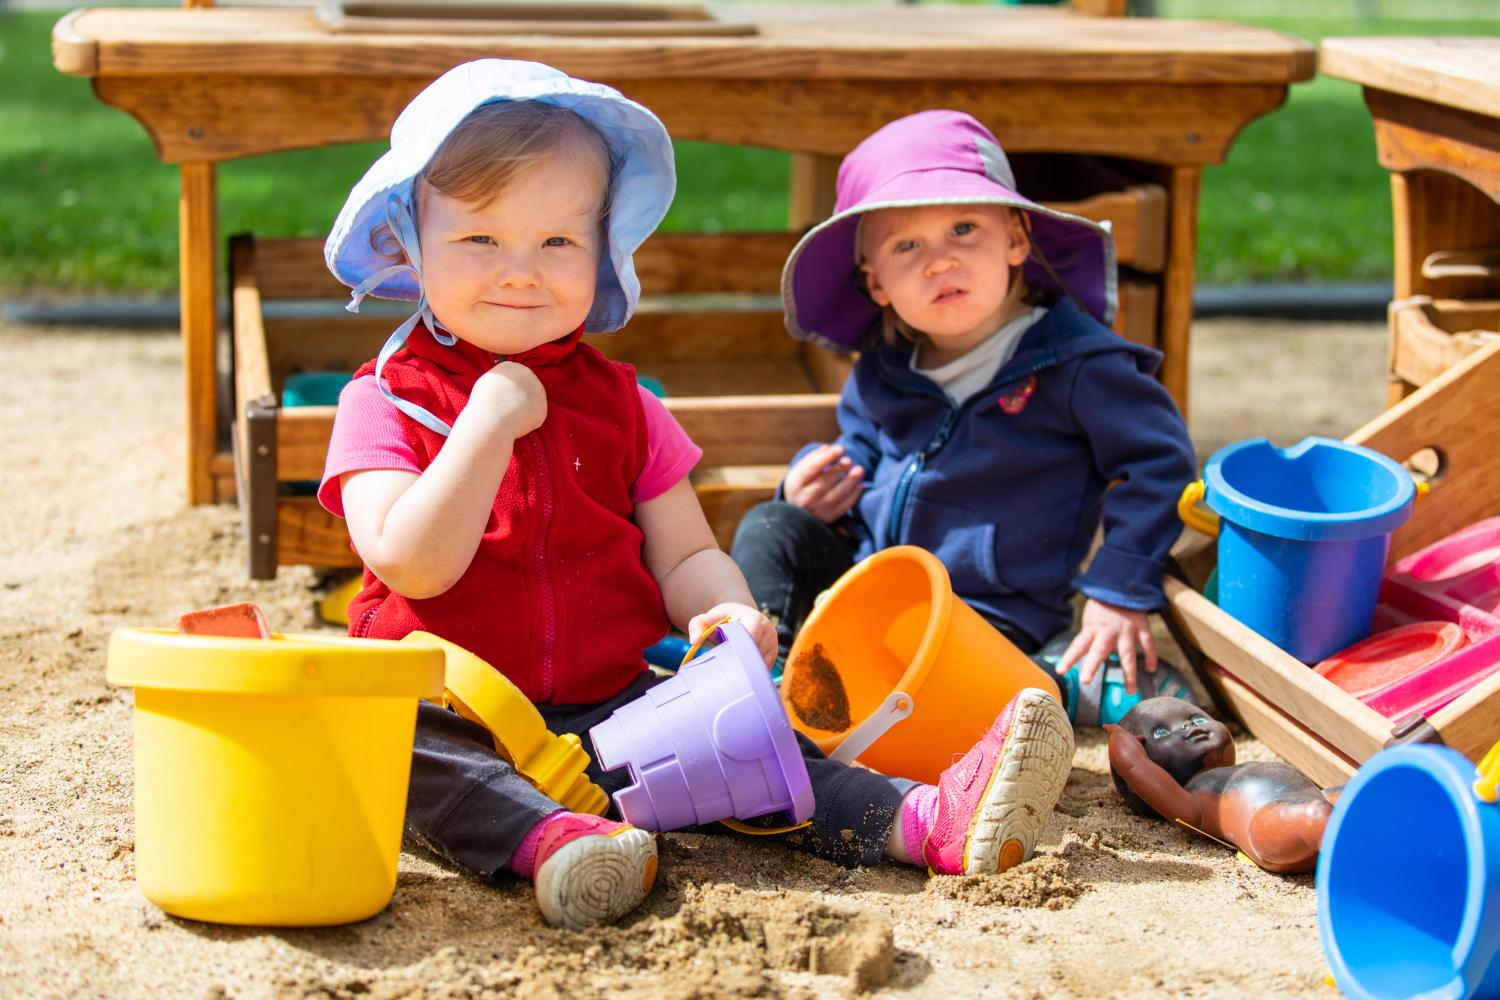 Toddlers in sand box